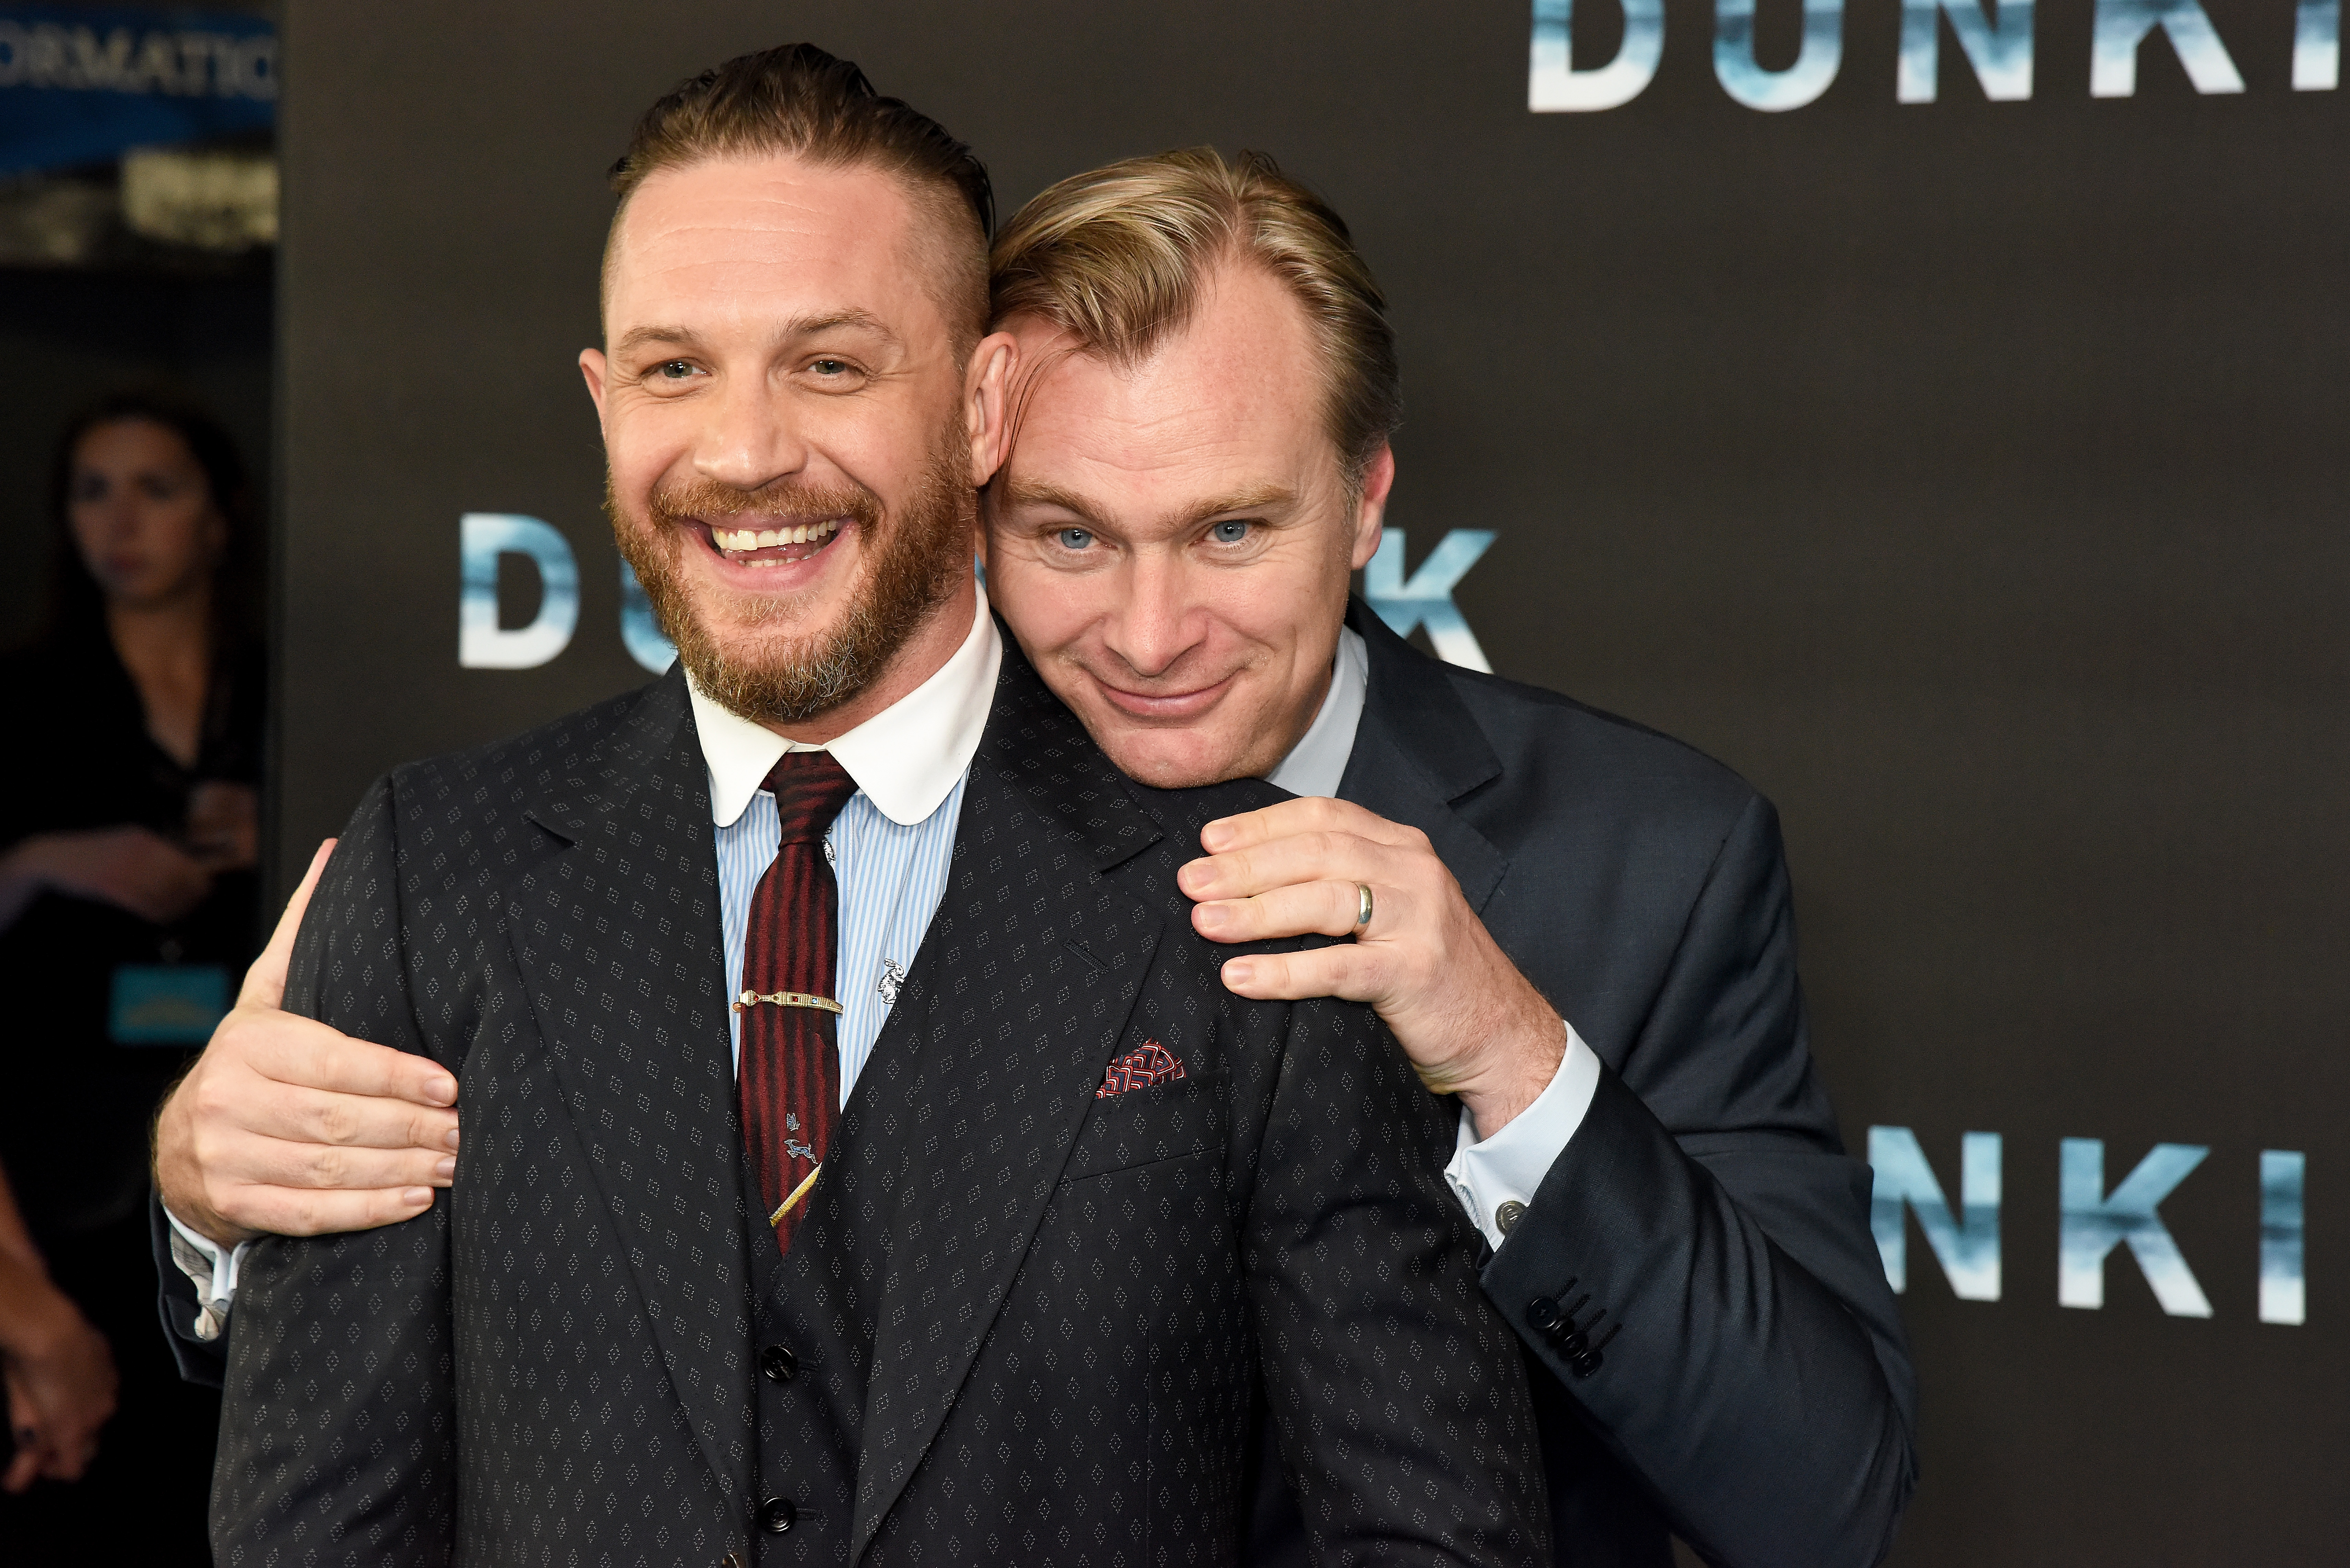 Tom Hardy and Christopher Nolan at an event for Dunkirk (2017)